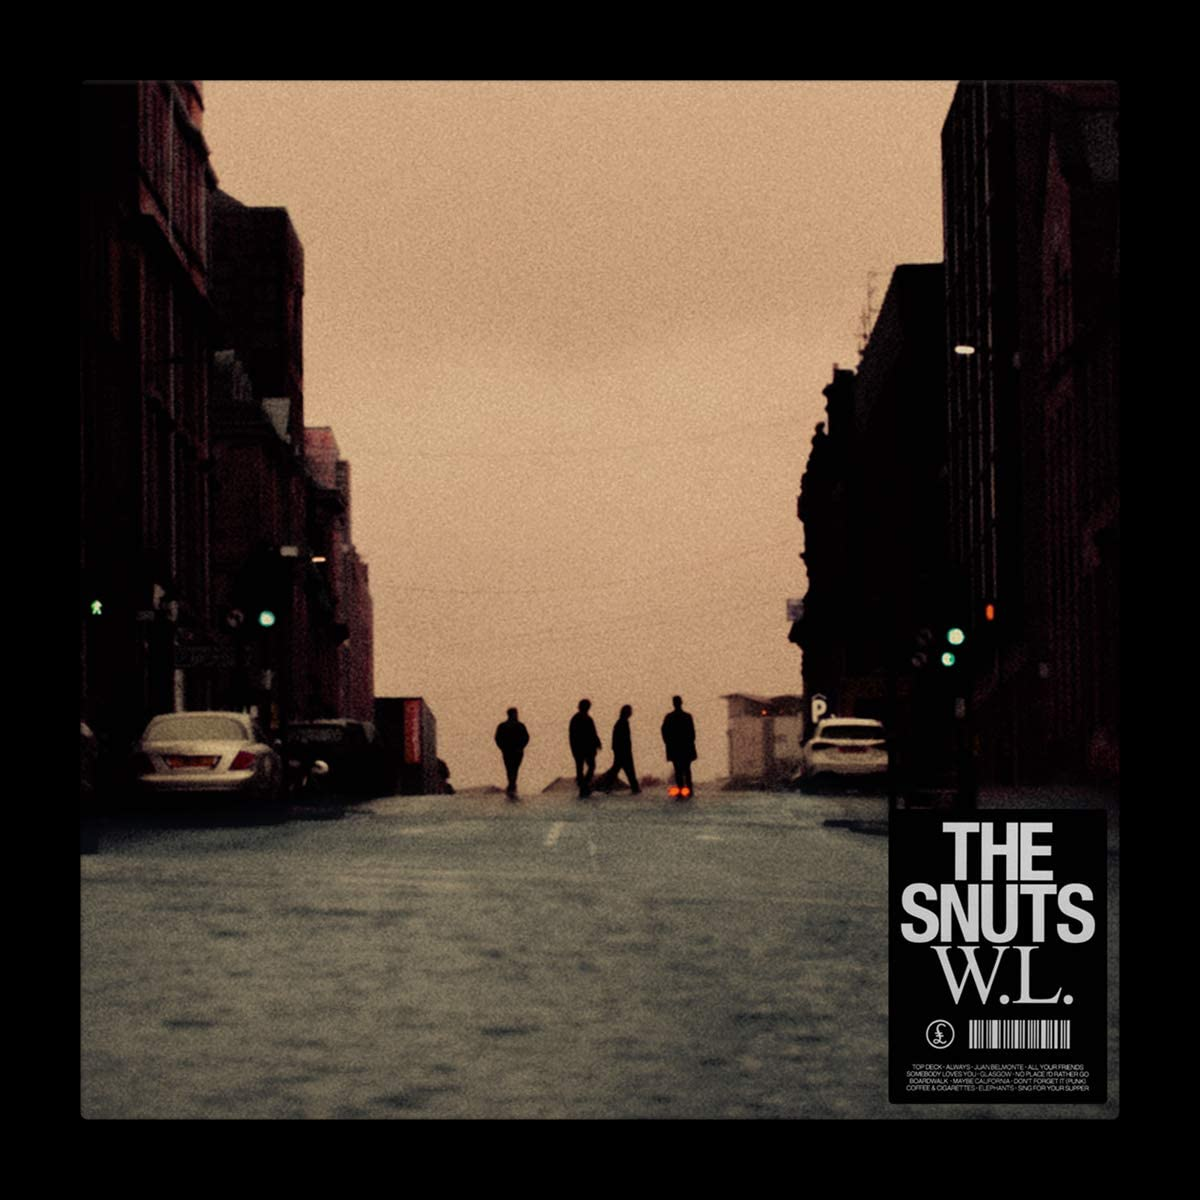 Produced by Tony Hoffer! The Snuts W.L. debuts at #1 on the UK Official Album Chart 100!